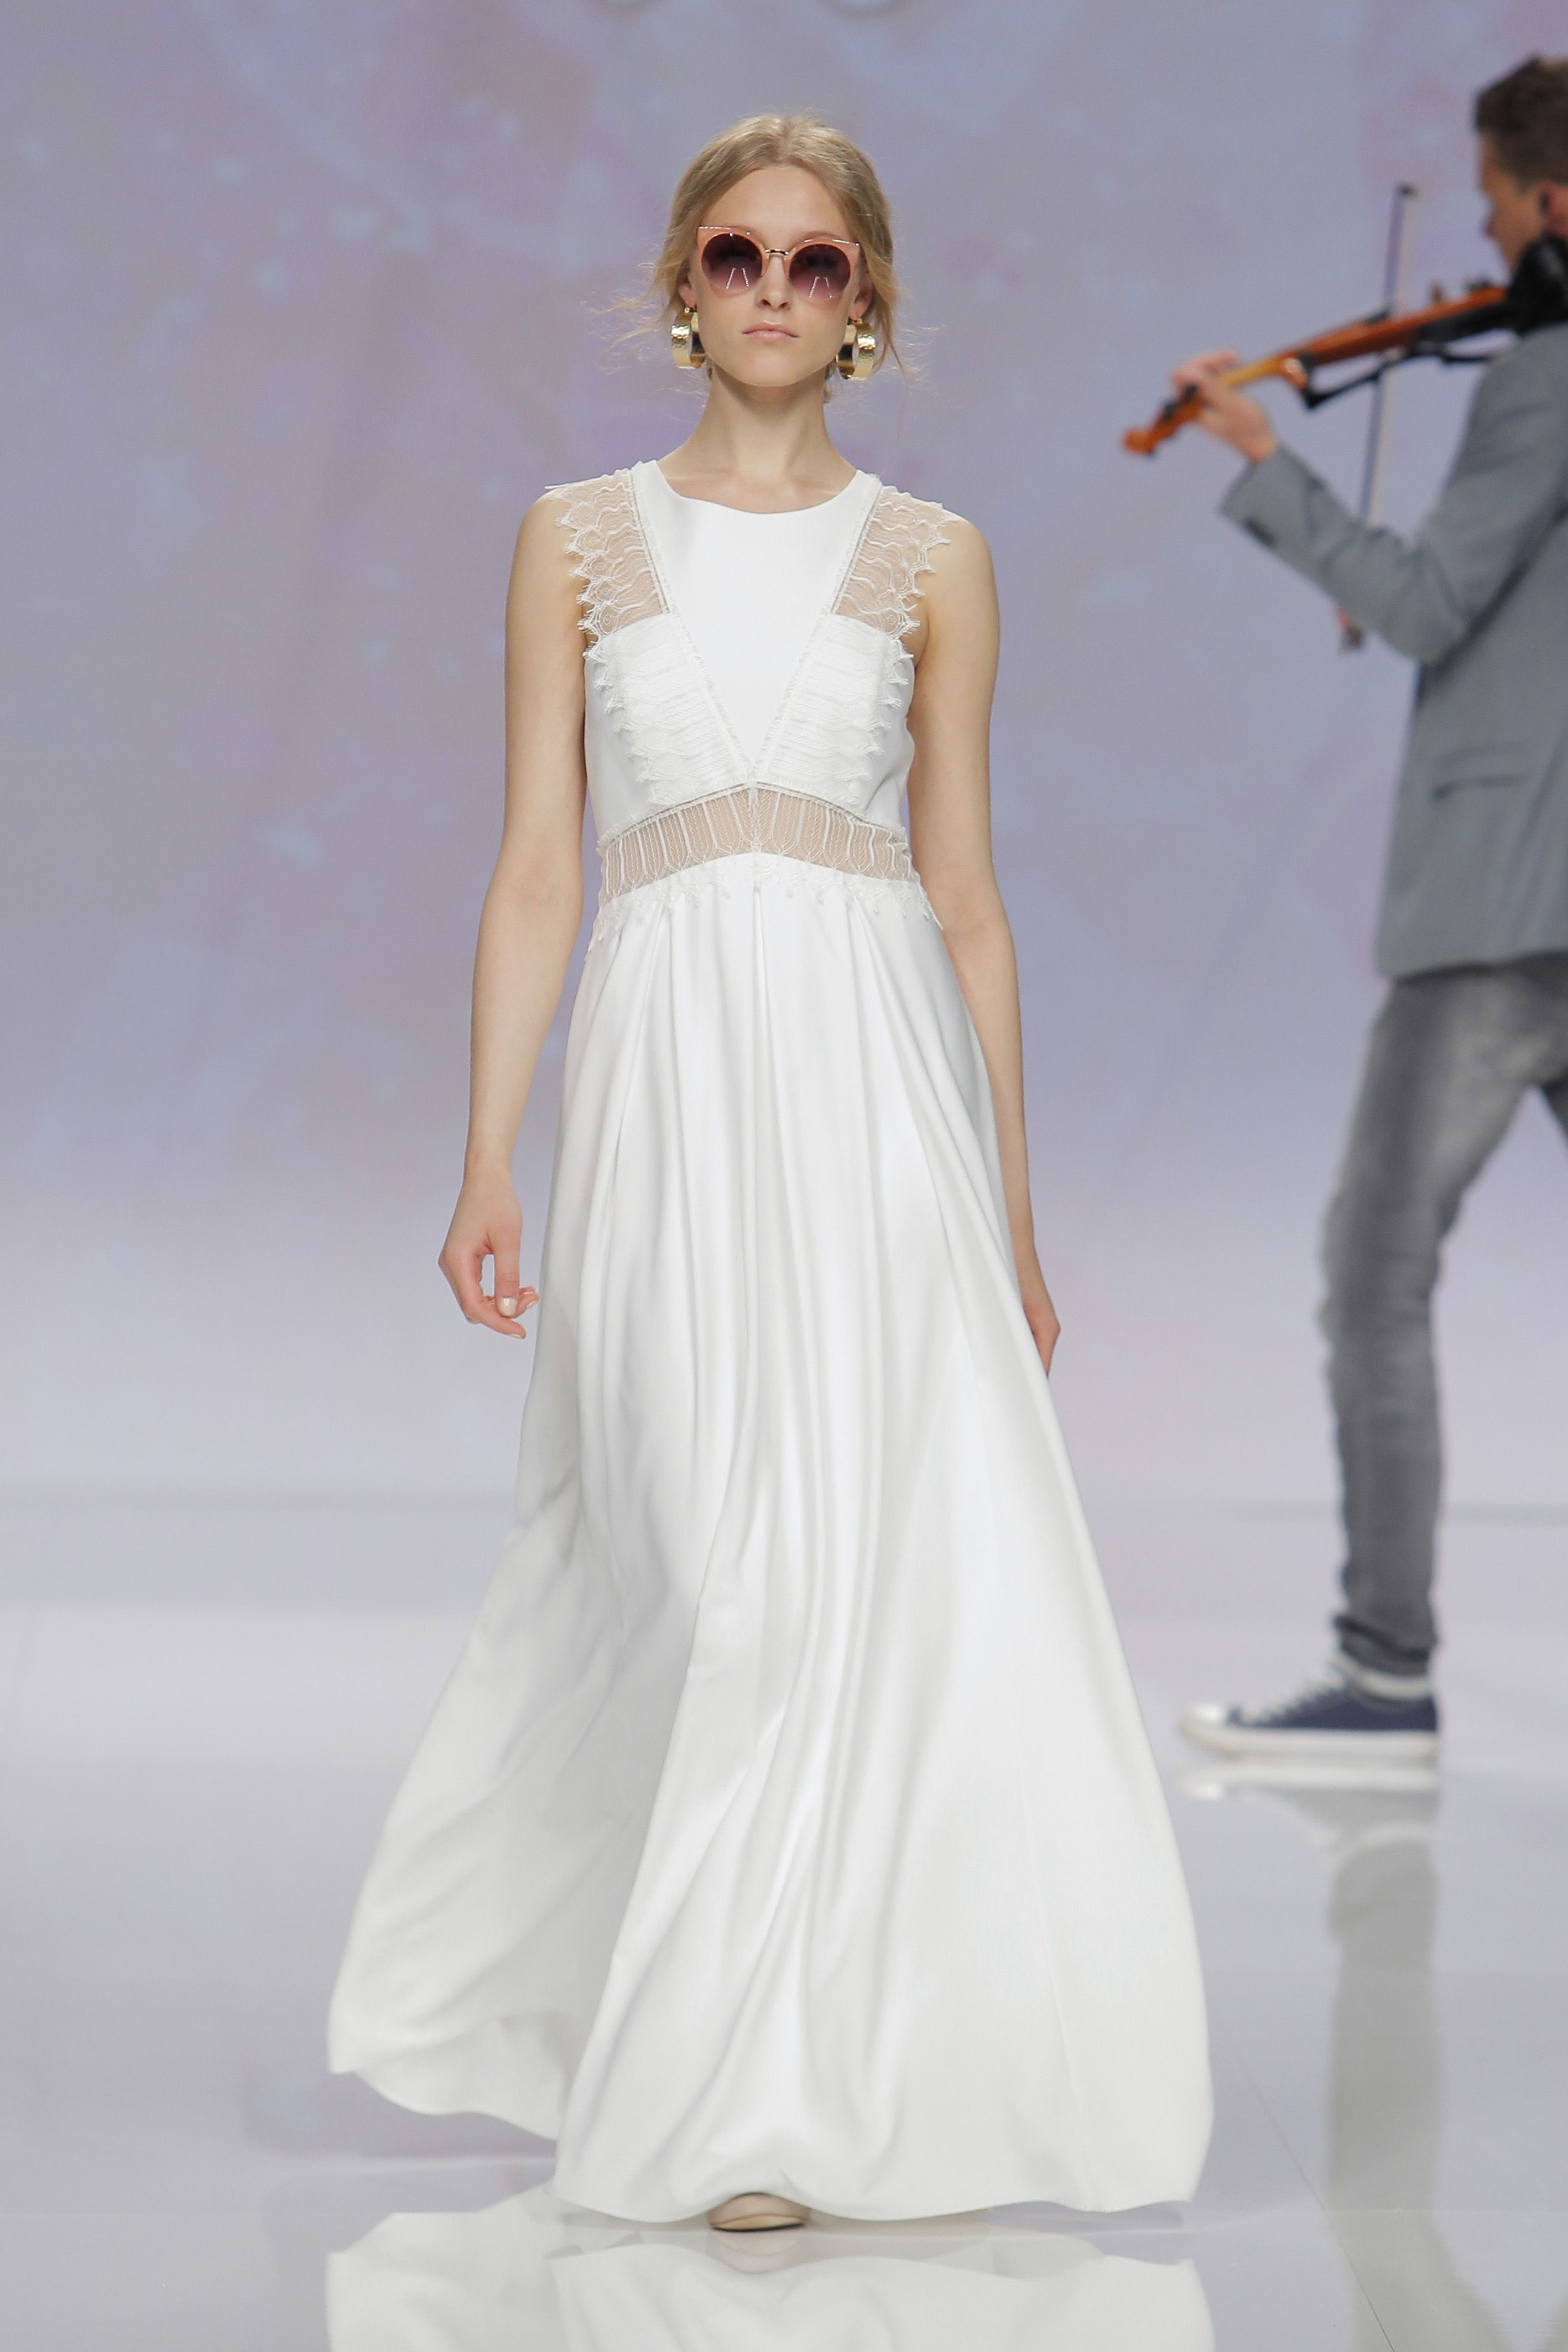 The prettiest wedding dresses from barcelona bridal fashion week the prettiest wedding dresses from barcelona bridal fashion week ombrellifo Image collections